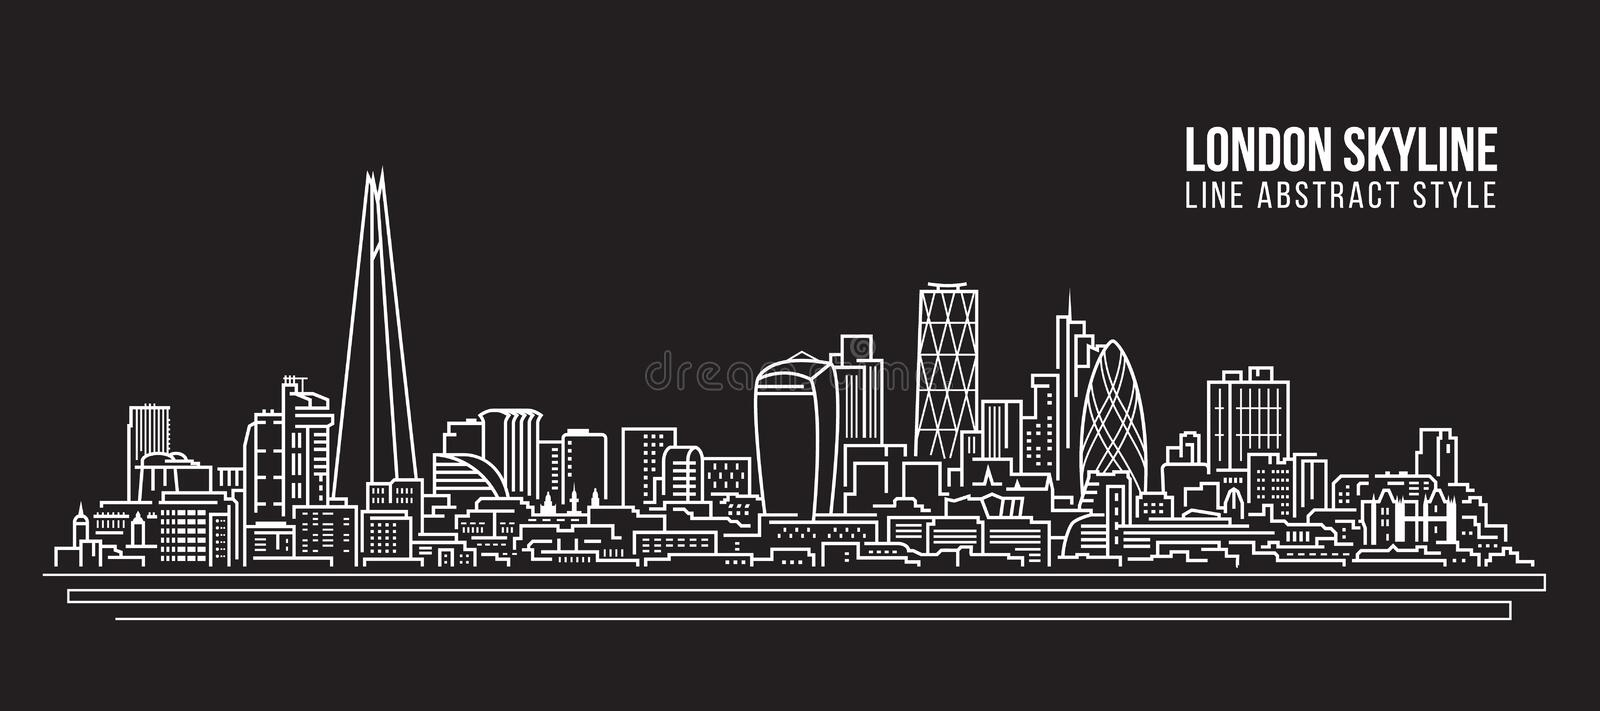 Stadtbild-Baulinie Kunst Vektor-Illustrationsdesign - London-Skyline stock abbildung